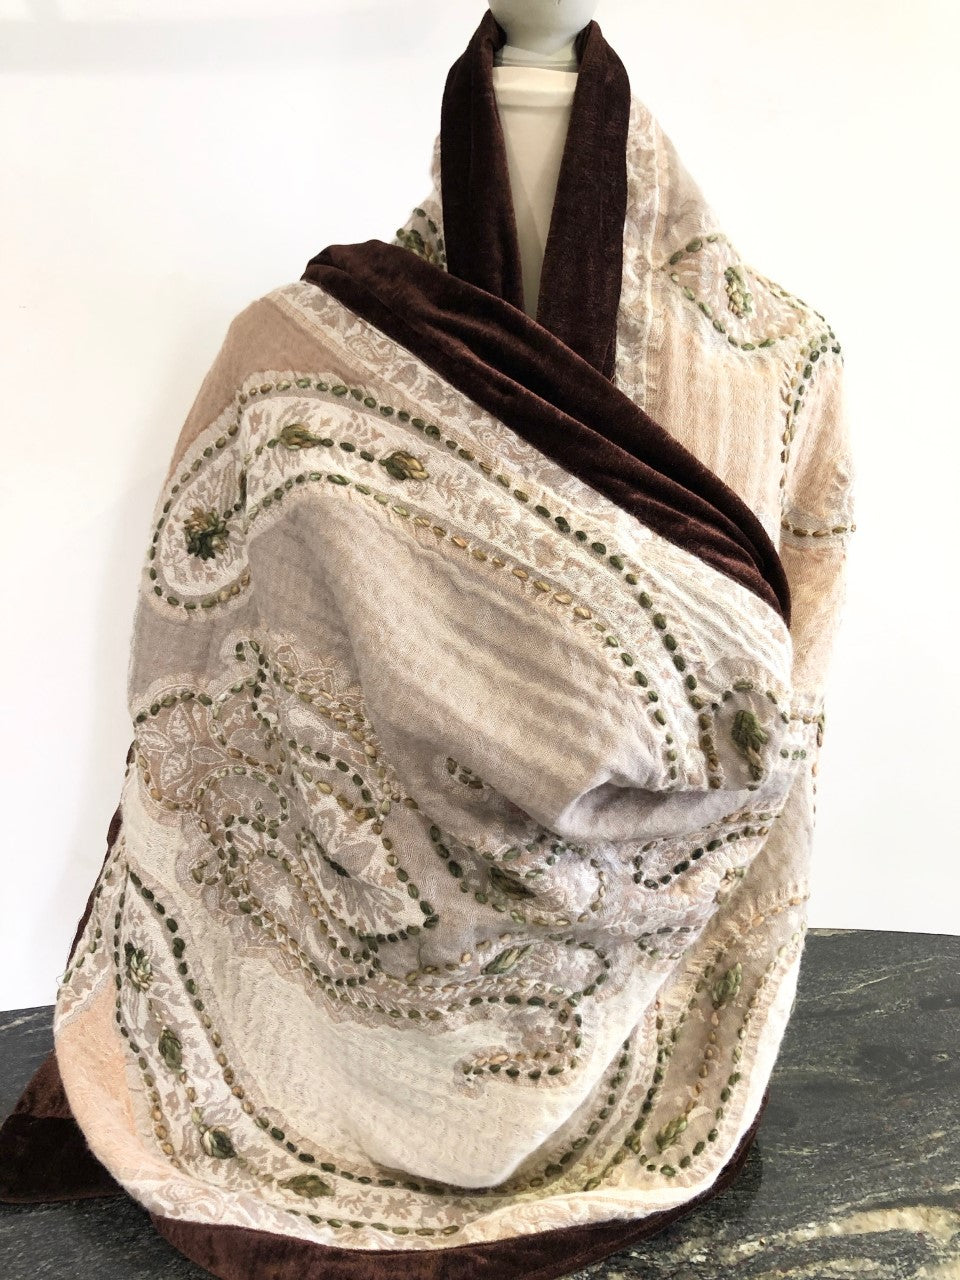 Shawl in Natural Shades with Chocolate Velvet Trim.